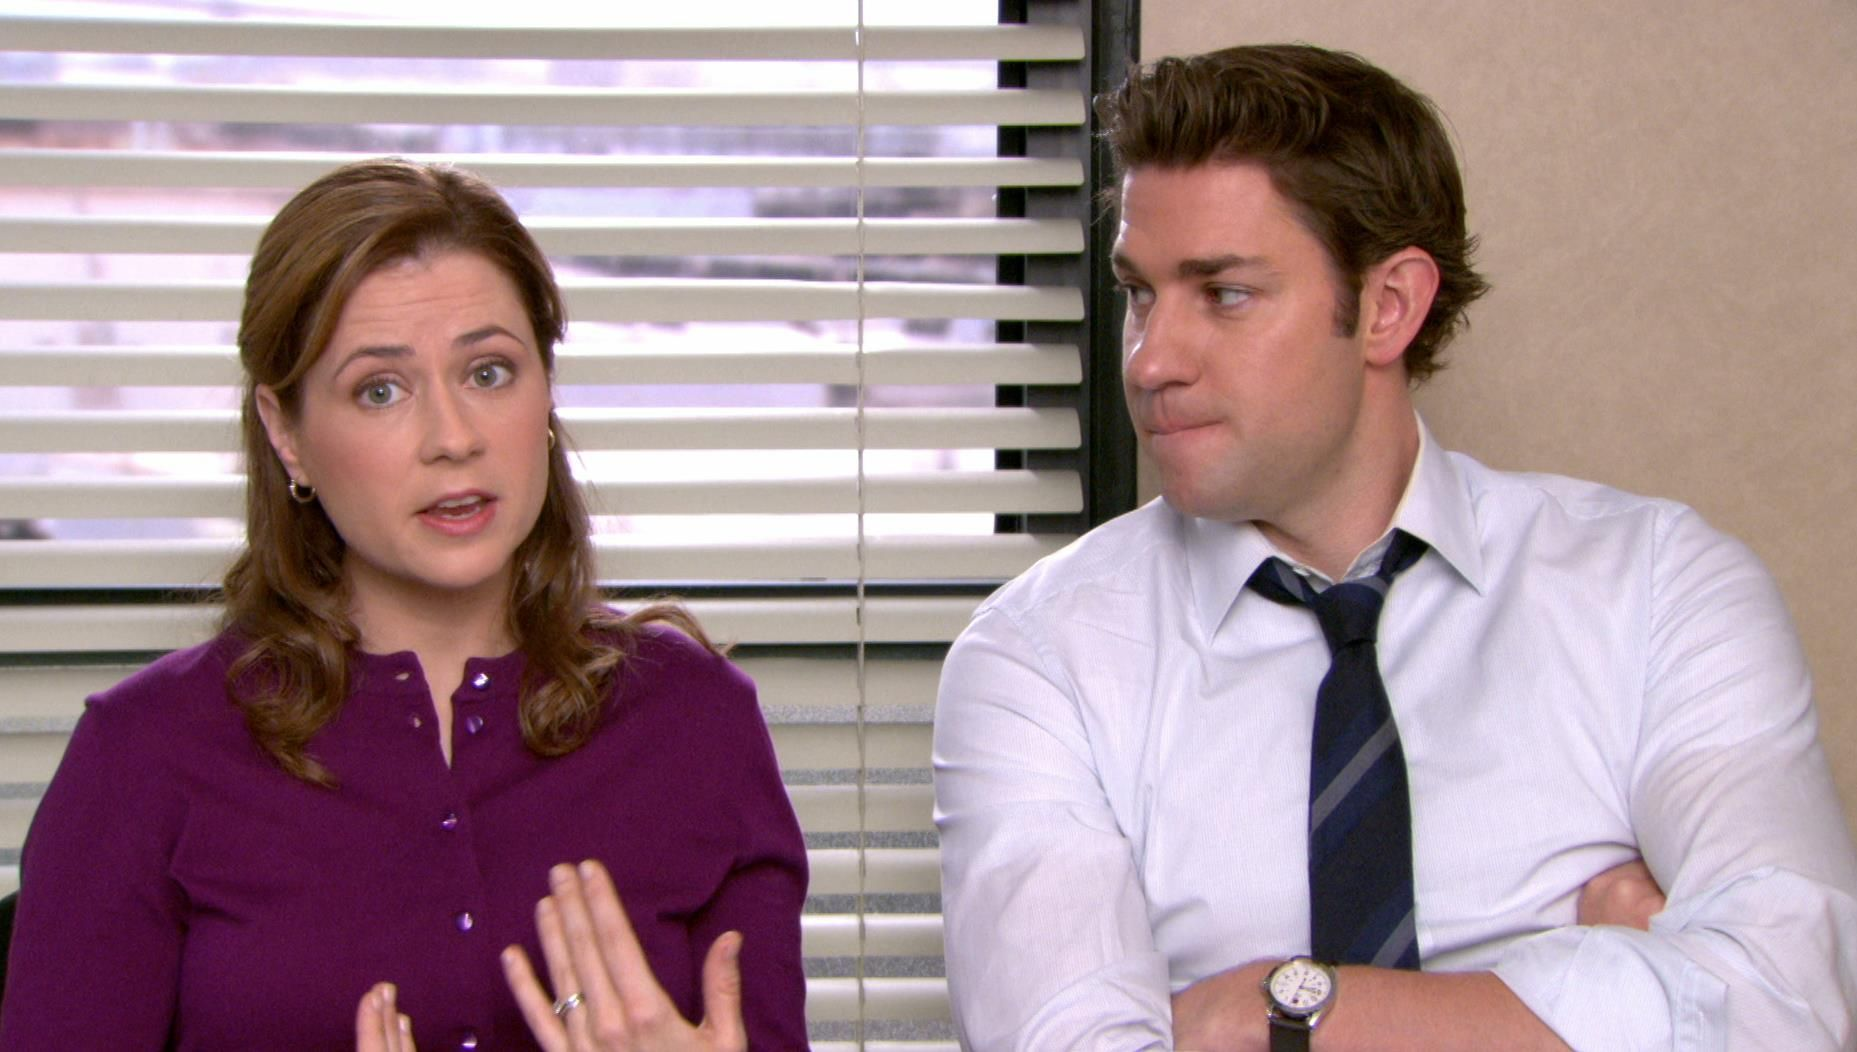 Apr 2013. Are you telling me you didnt reach for a Kleenex when Jim finally asked Pam out on a date?